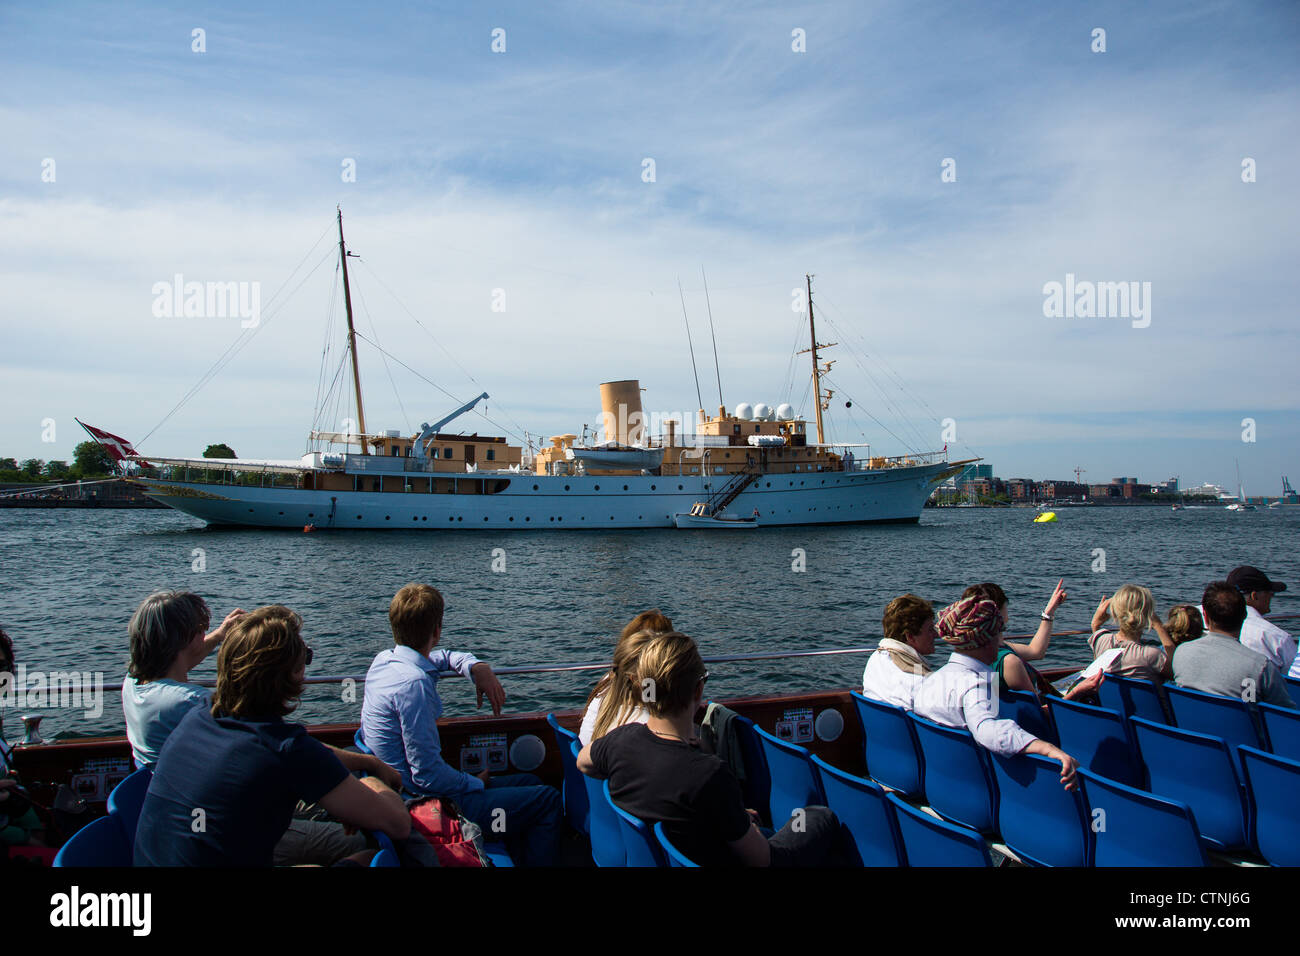 Summertime in Copenhagen, capitol of Denmark. The Royal yacht anchoring up in the habour - Stock Image